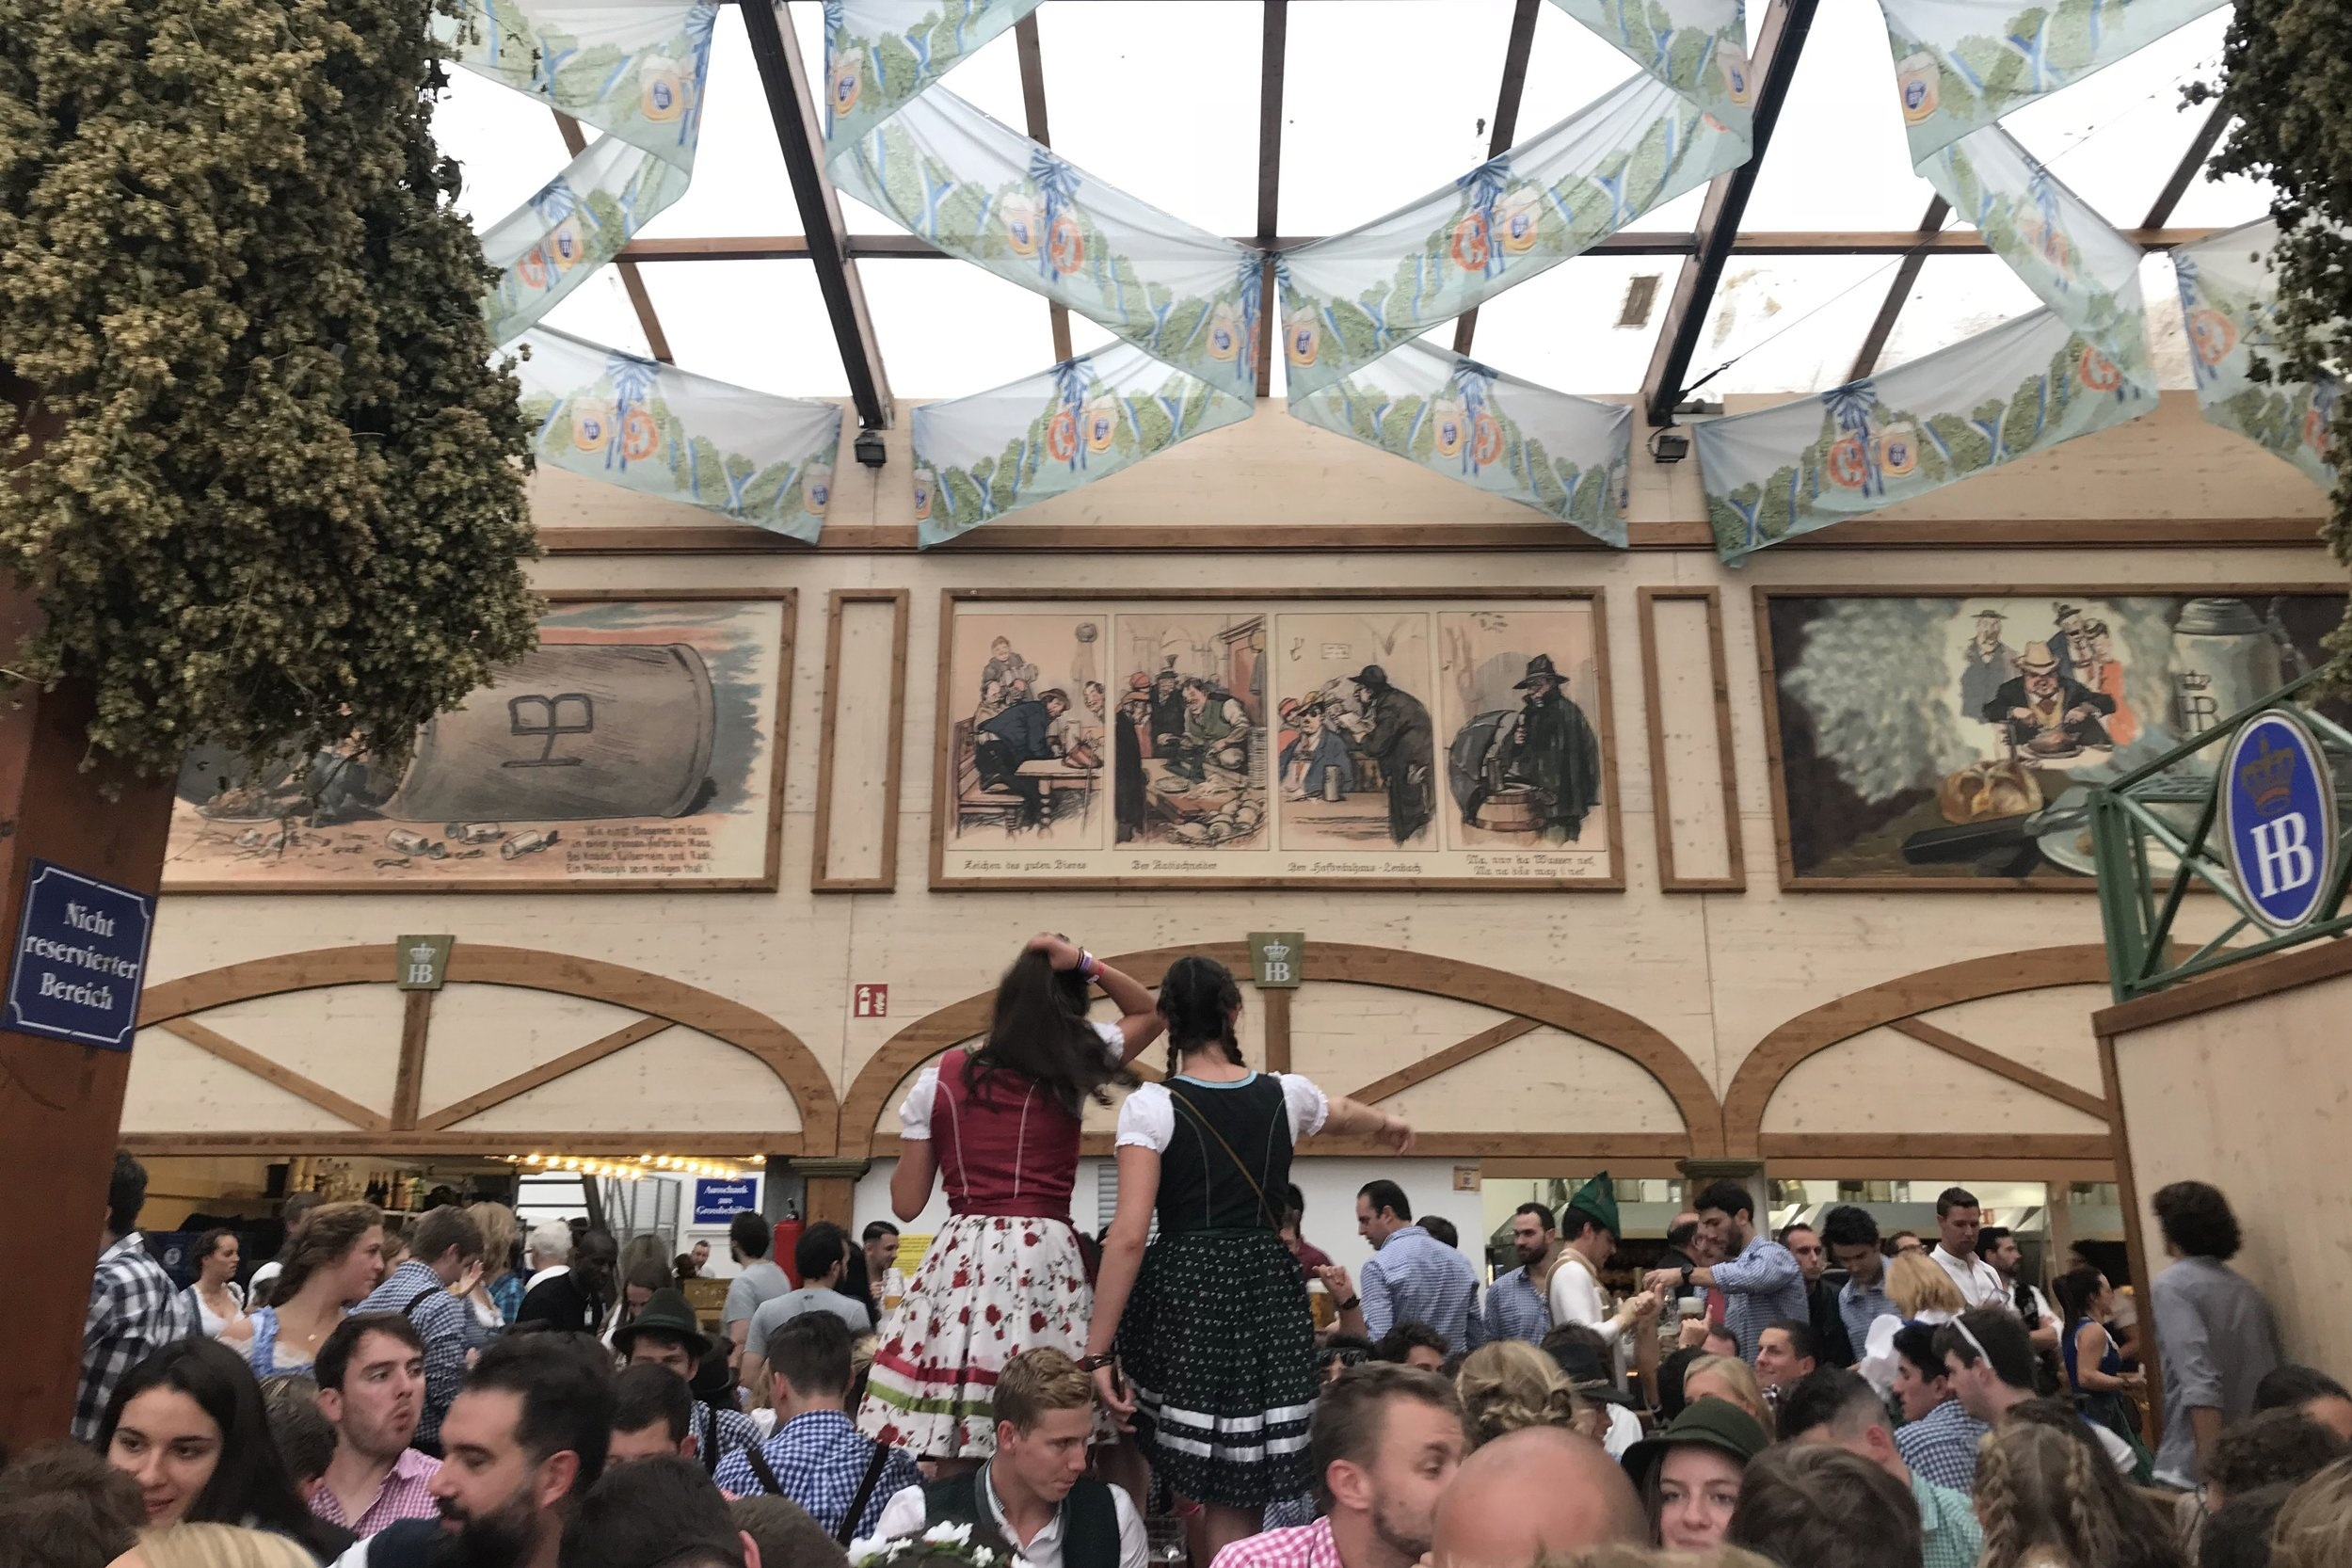 In the midst of the action in the Hofbräu Tent